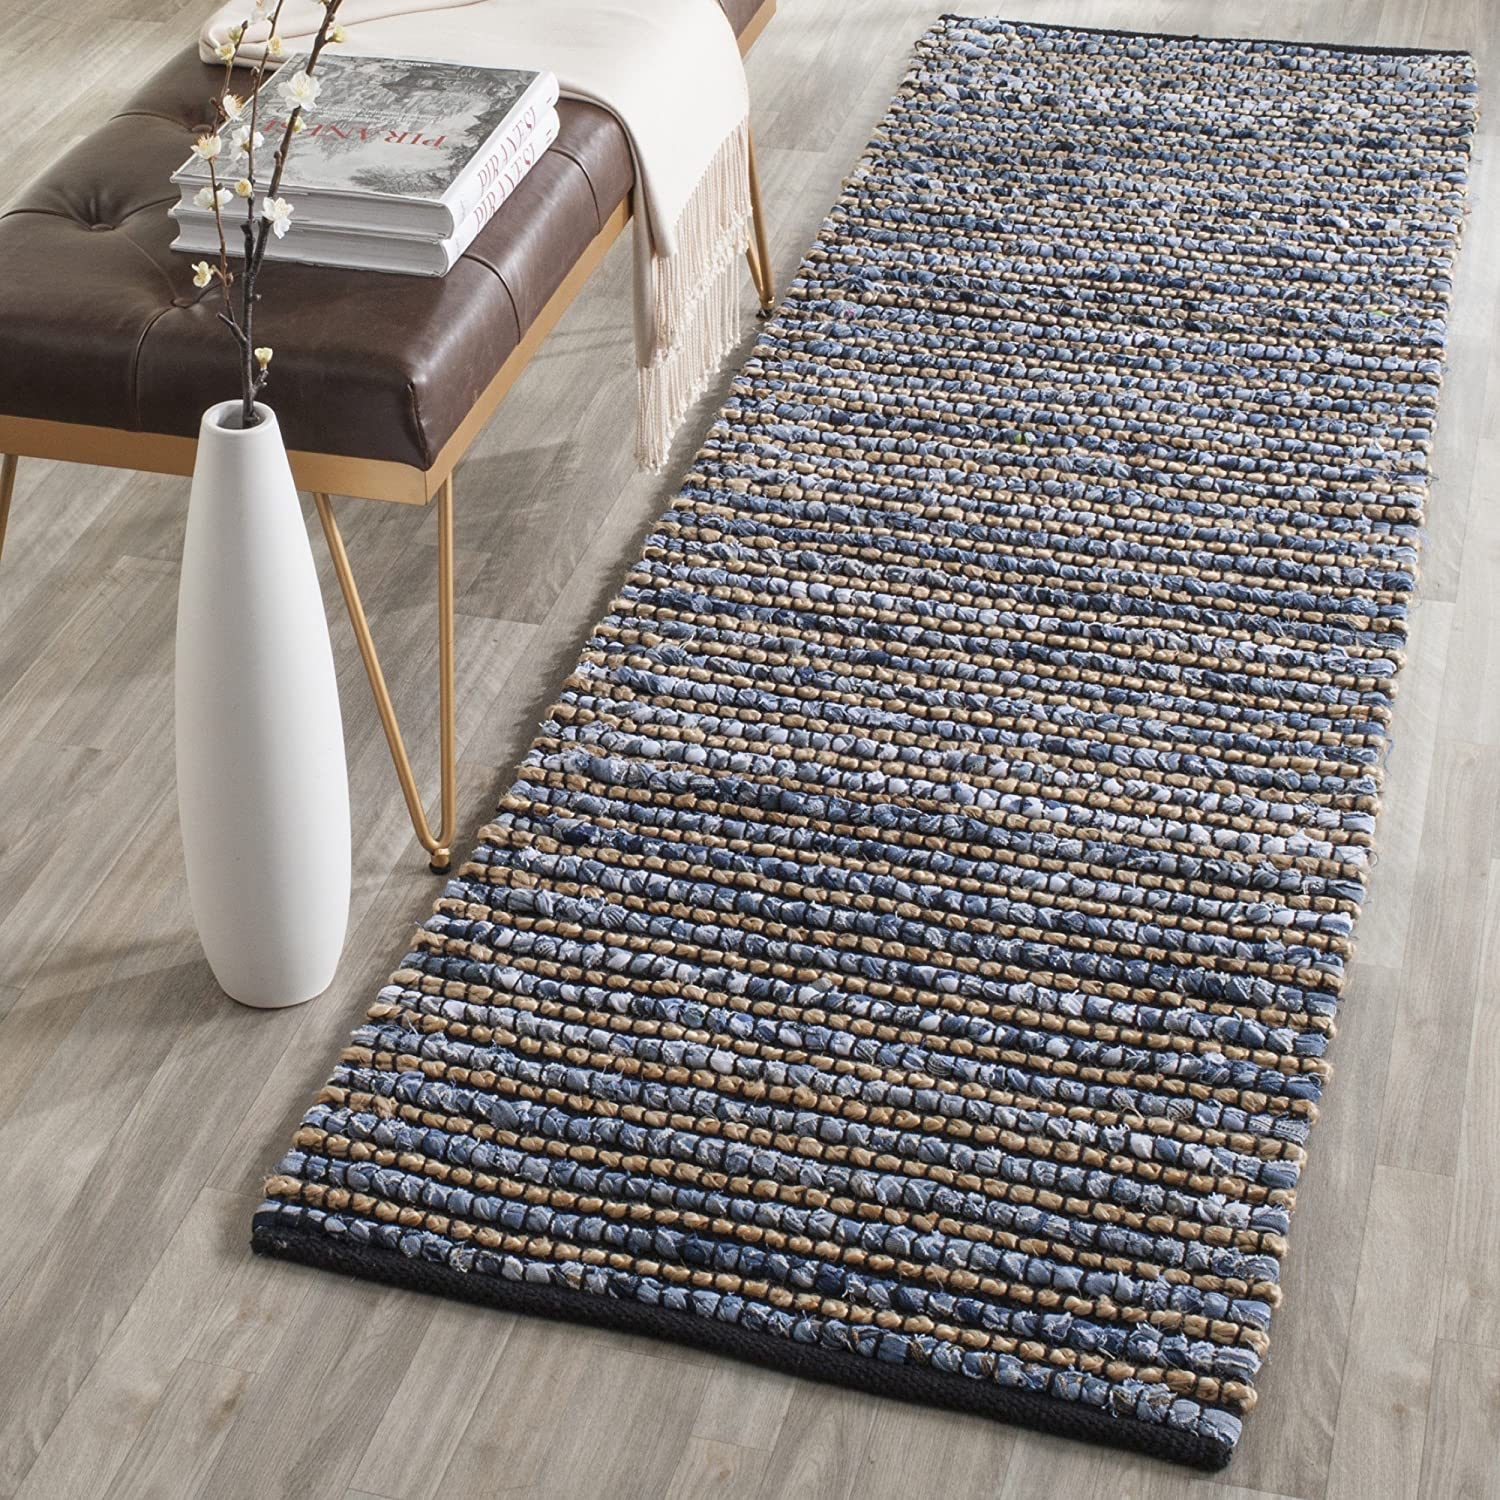 for wayfair aloft floor area sizes fabulous large clearance rug rugs teal white dark roselawnlutheran and walmart black by flooring ikea dalyn gray cheap amazon runner